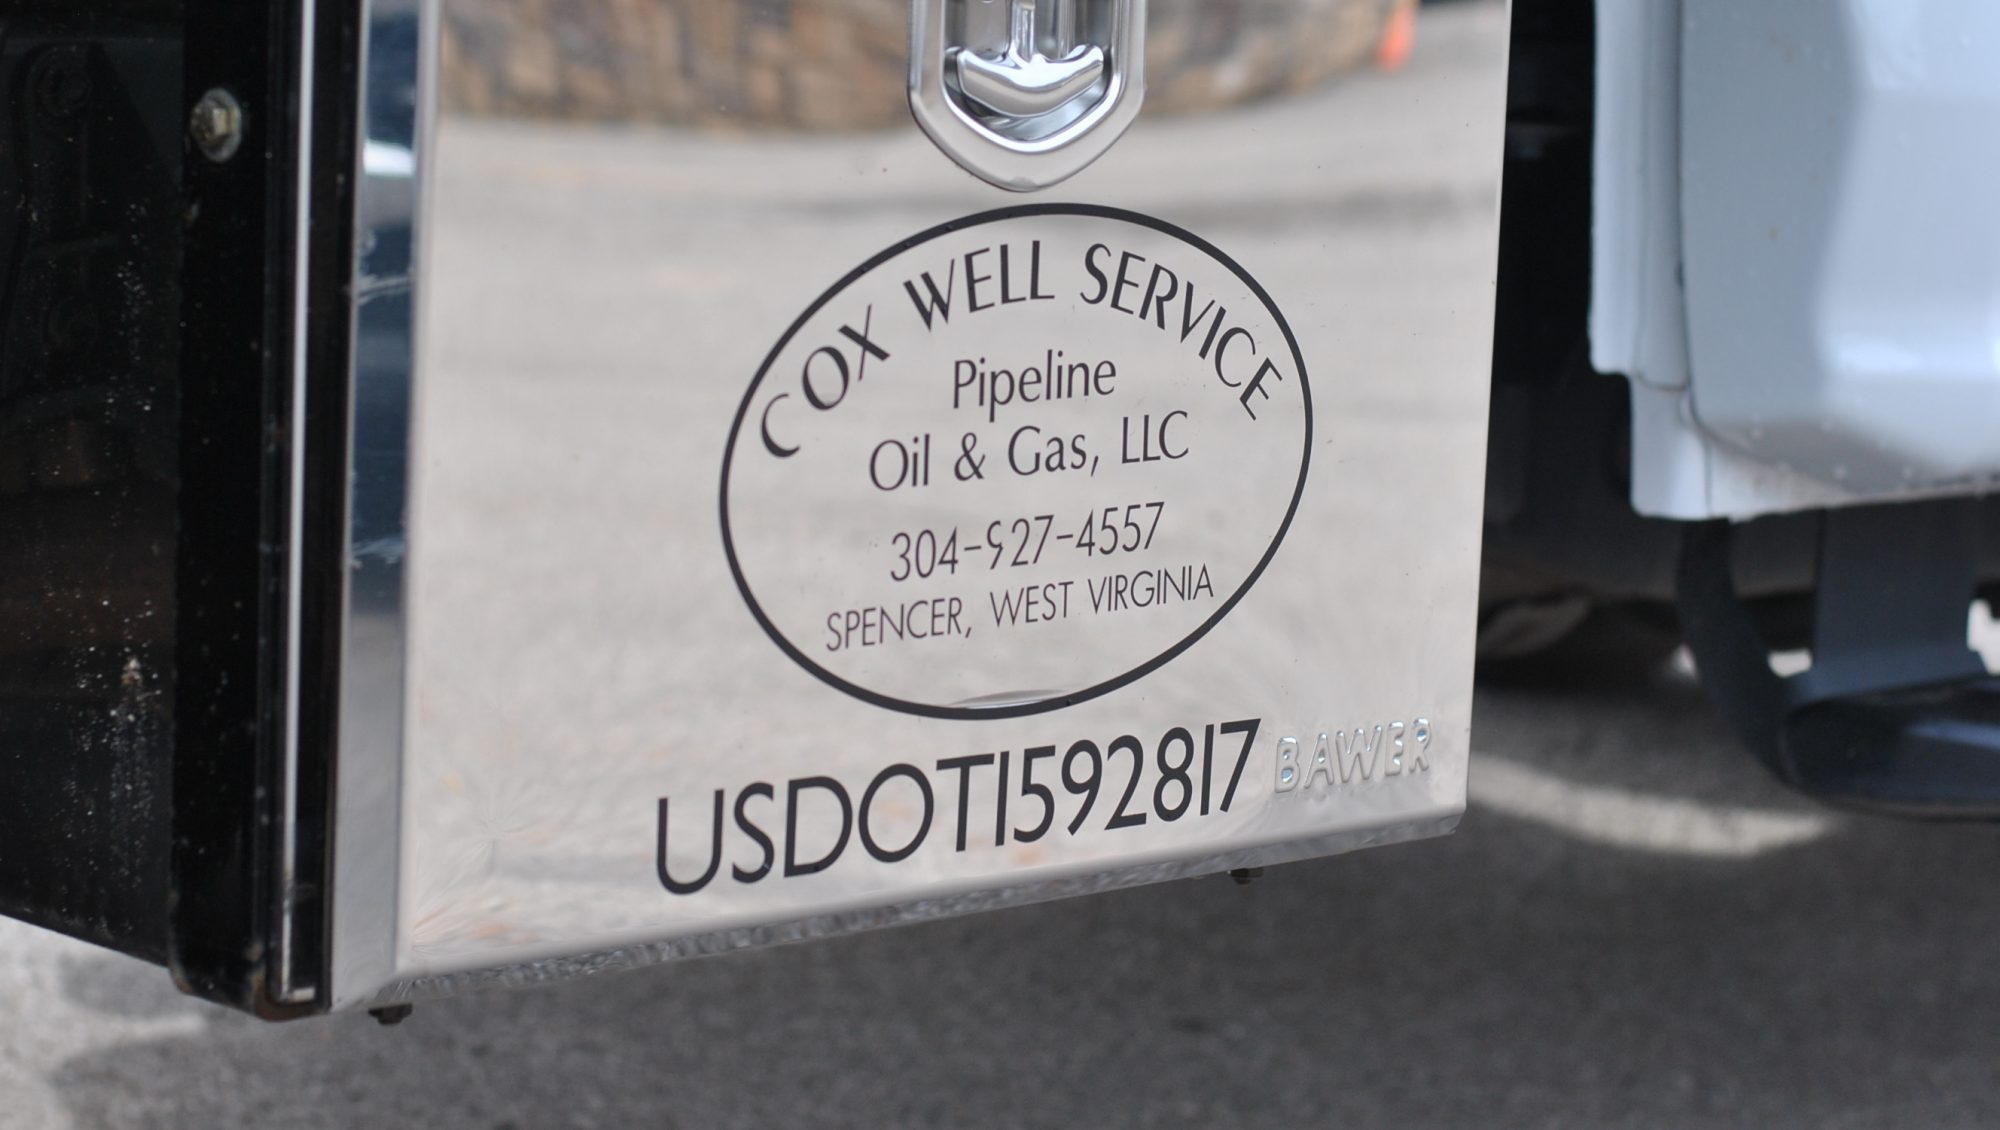 Cox Well Service & Pipeline, LLC